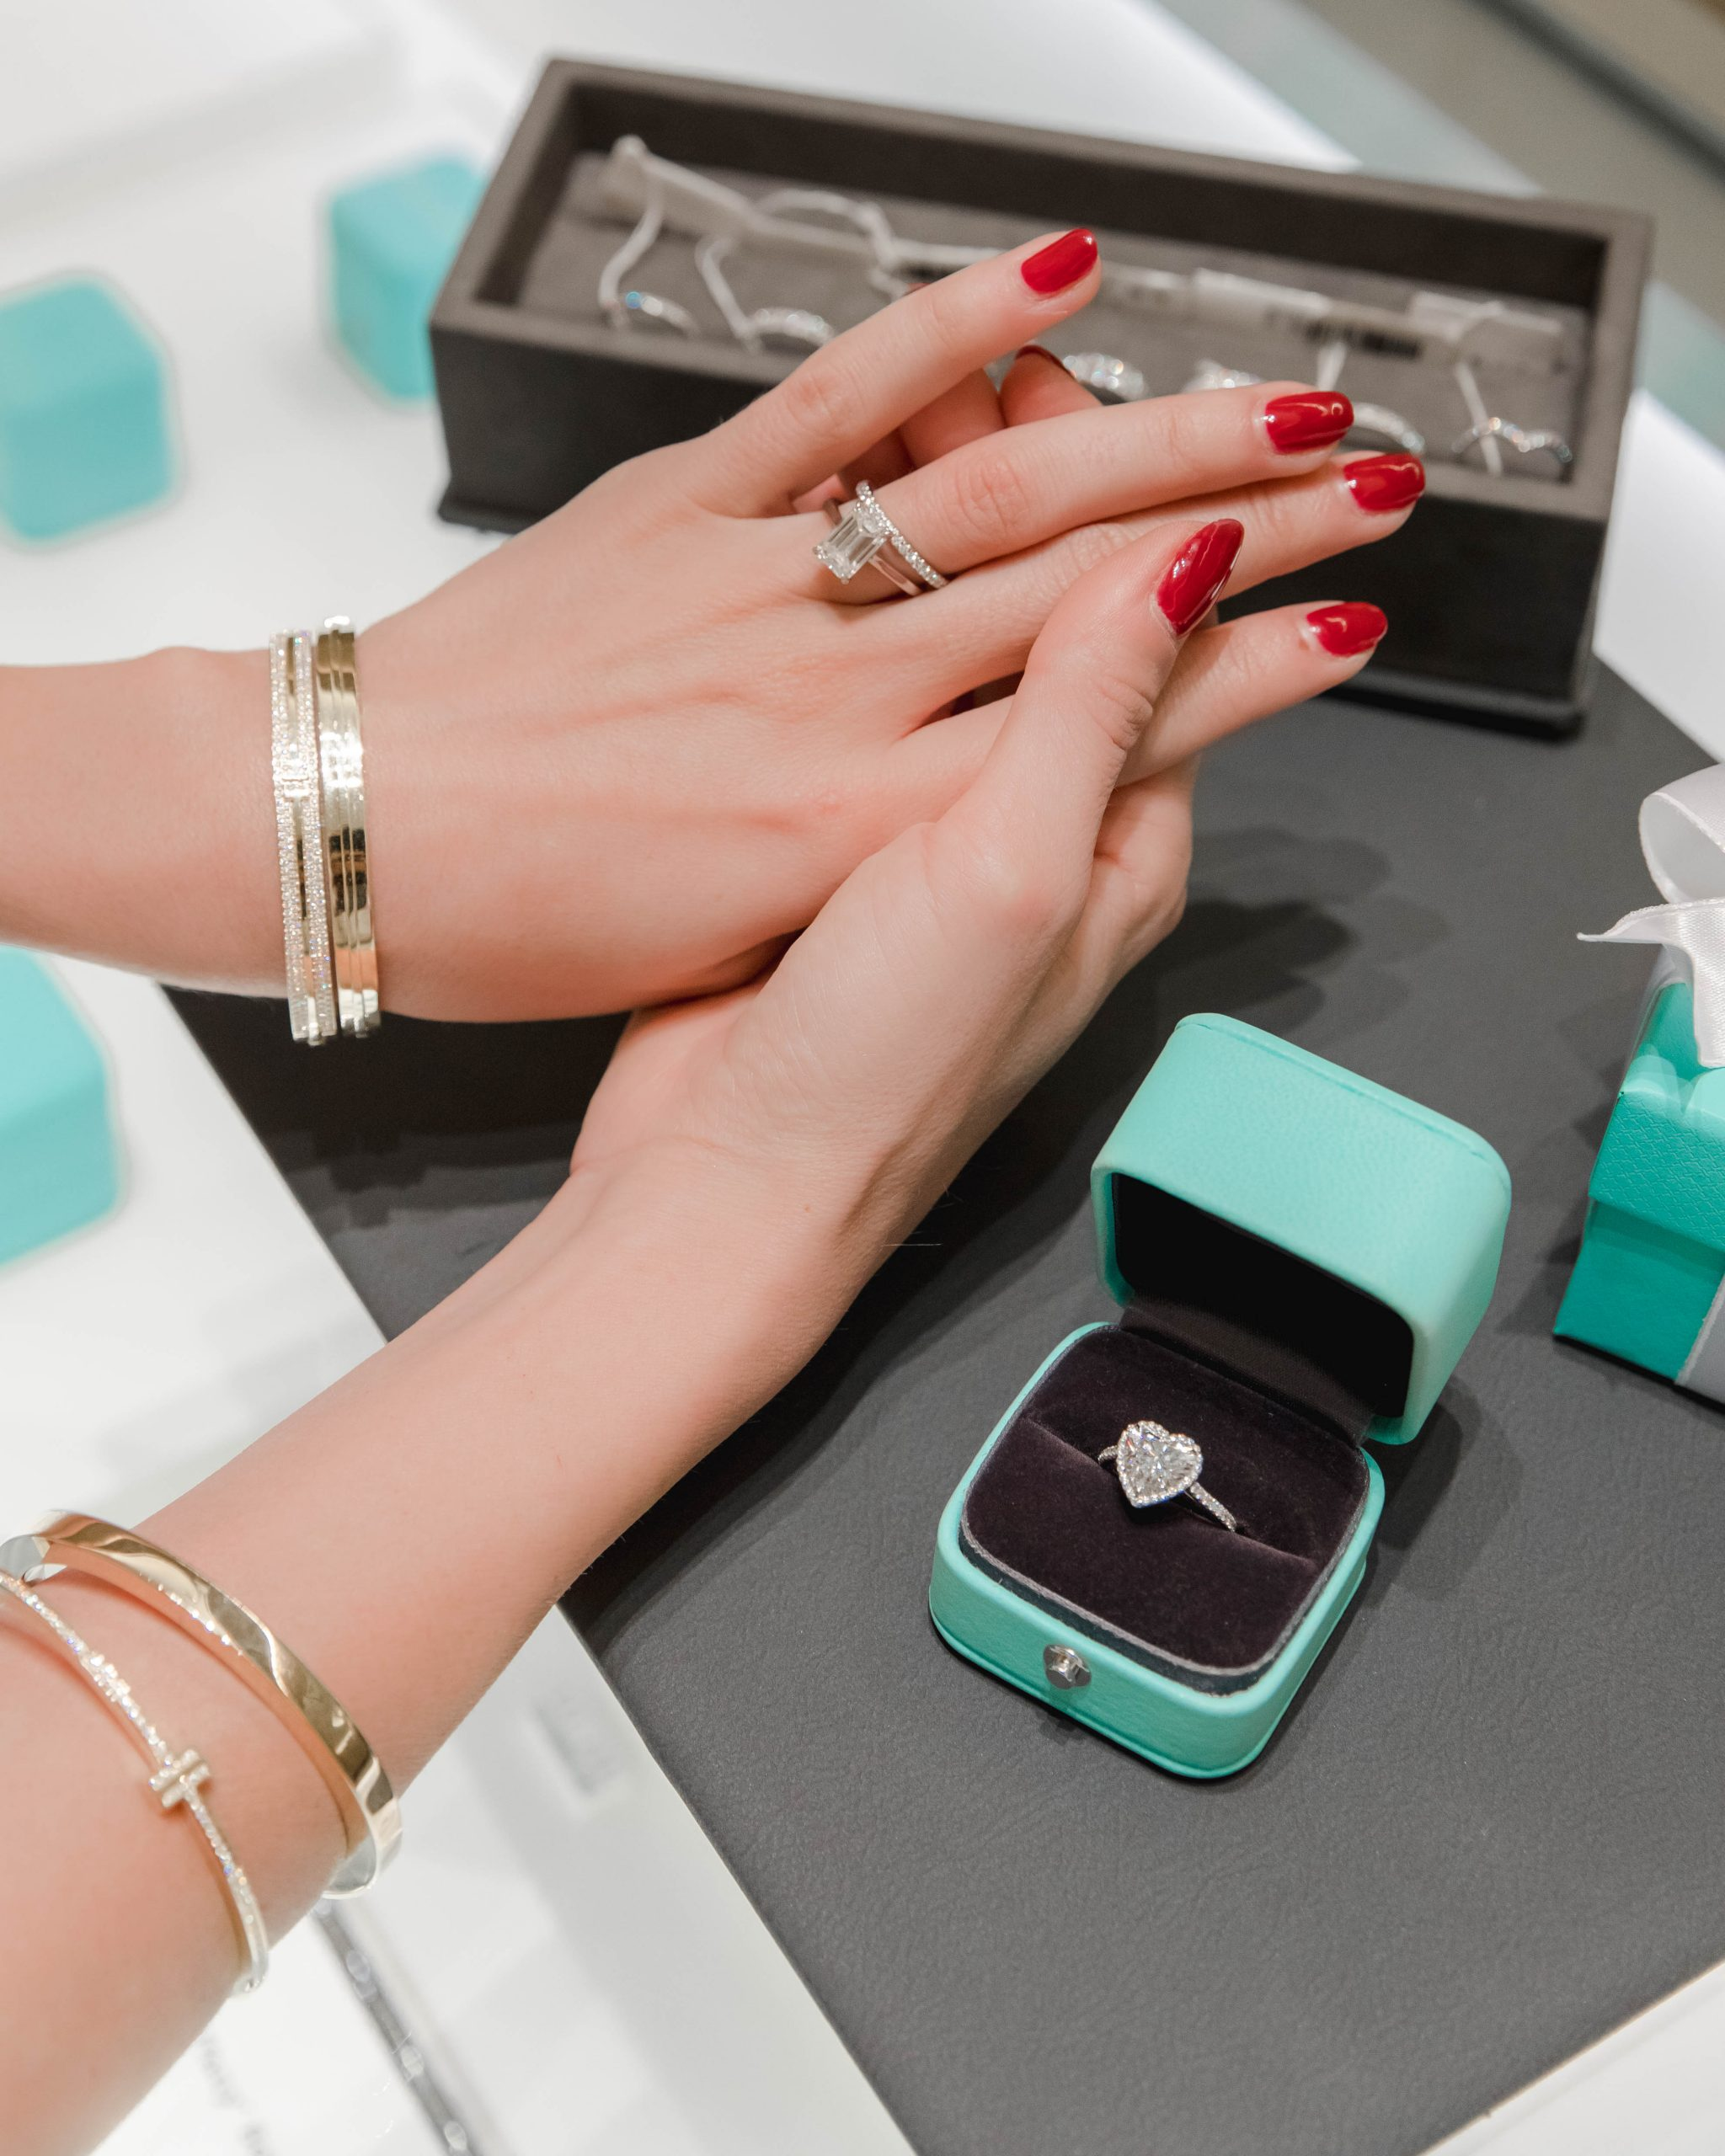 Style Blogger Stephanie reveals what's on her Wishlist at Tiffany's on The Style Bungalow